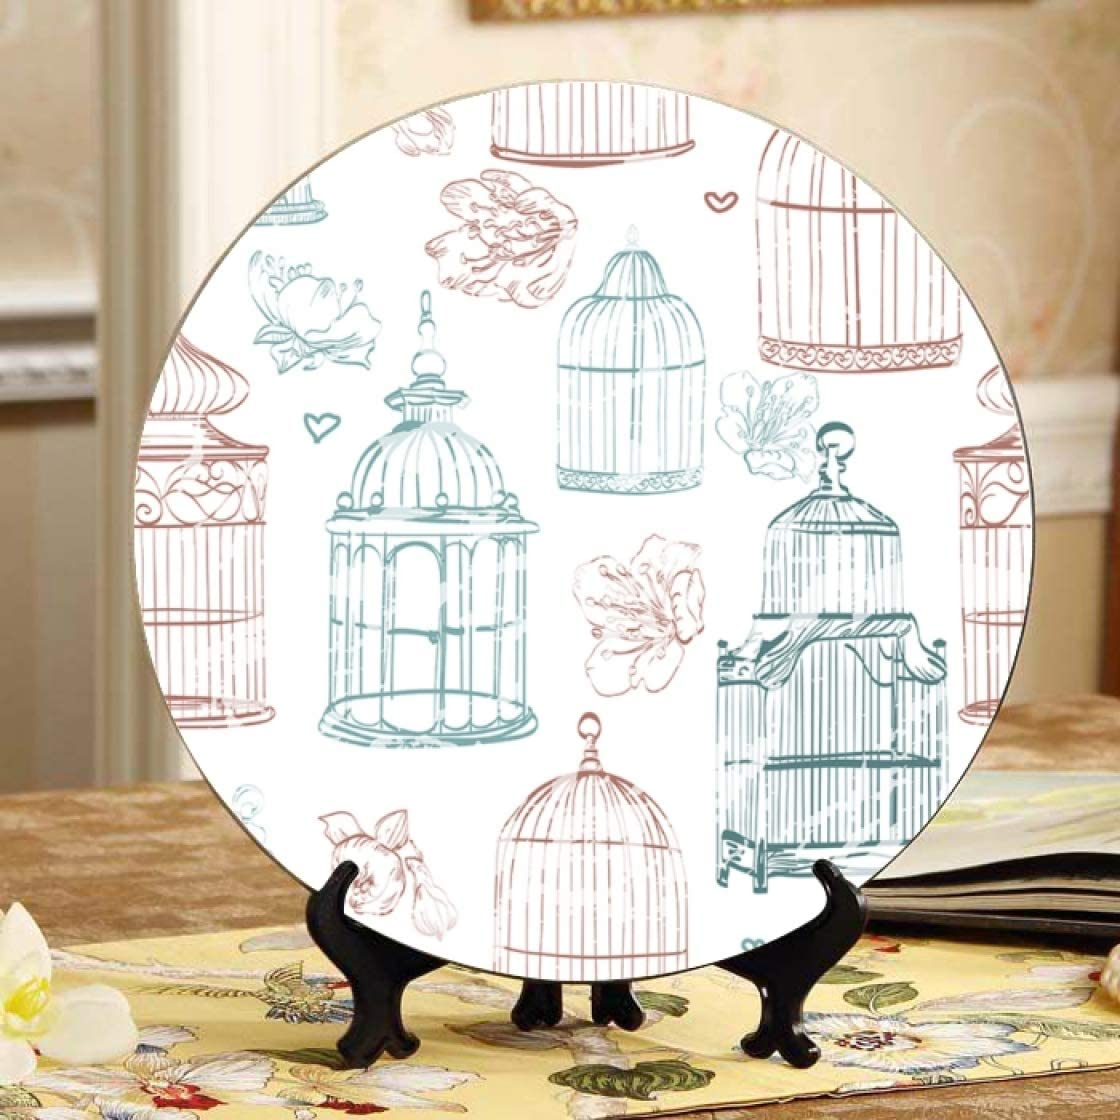 Lajro Oakland Mall Hanging Birdcage Ivy Knitted lowest price Plate Plates Stand Display Di